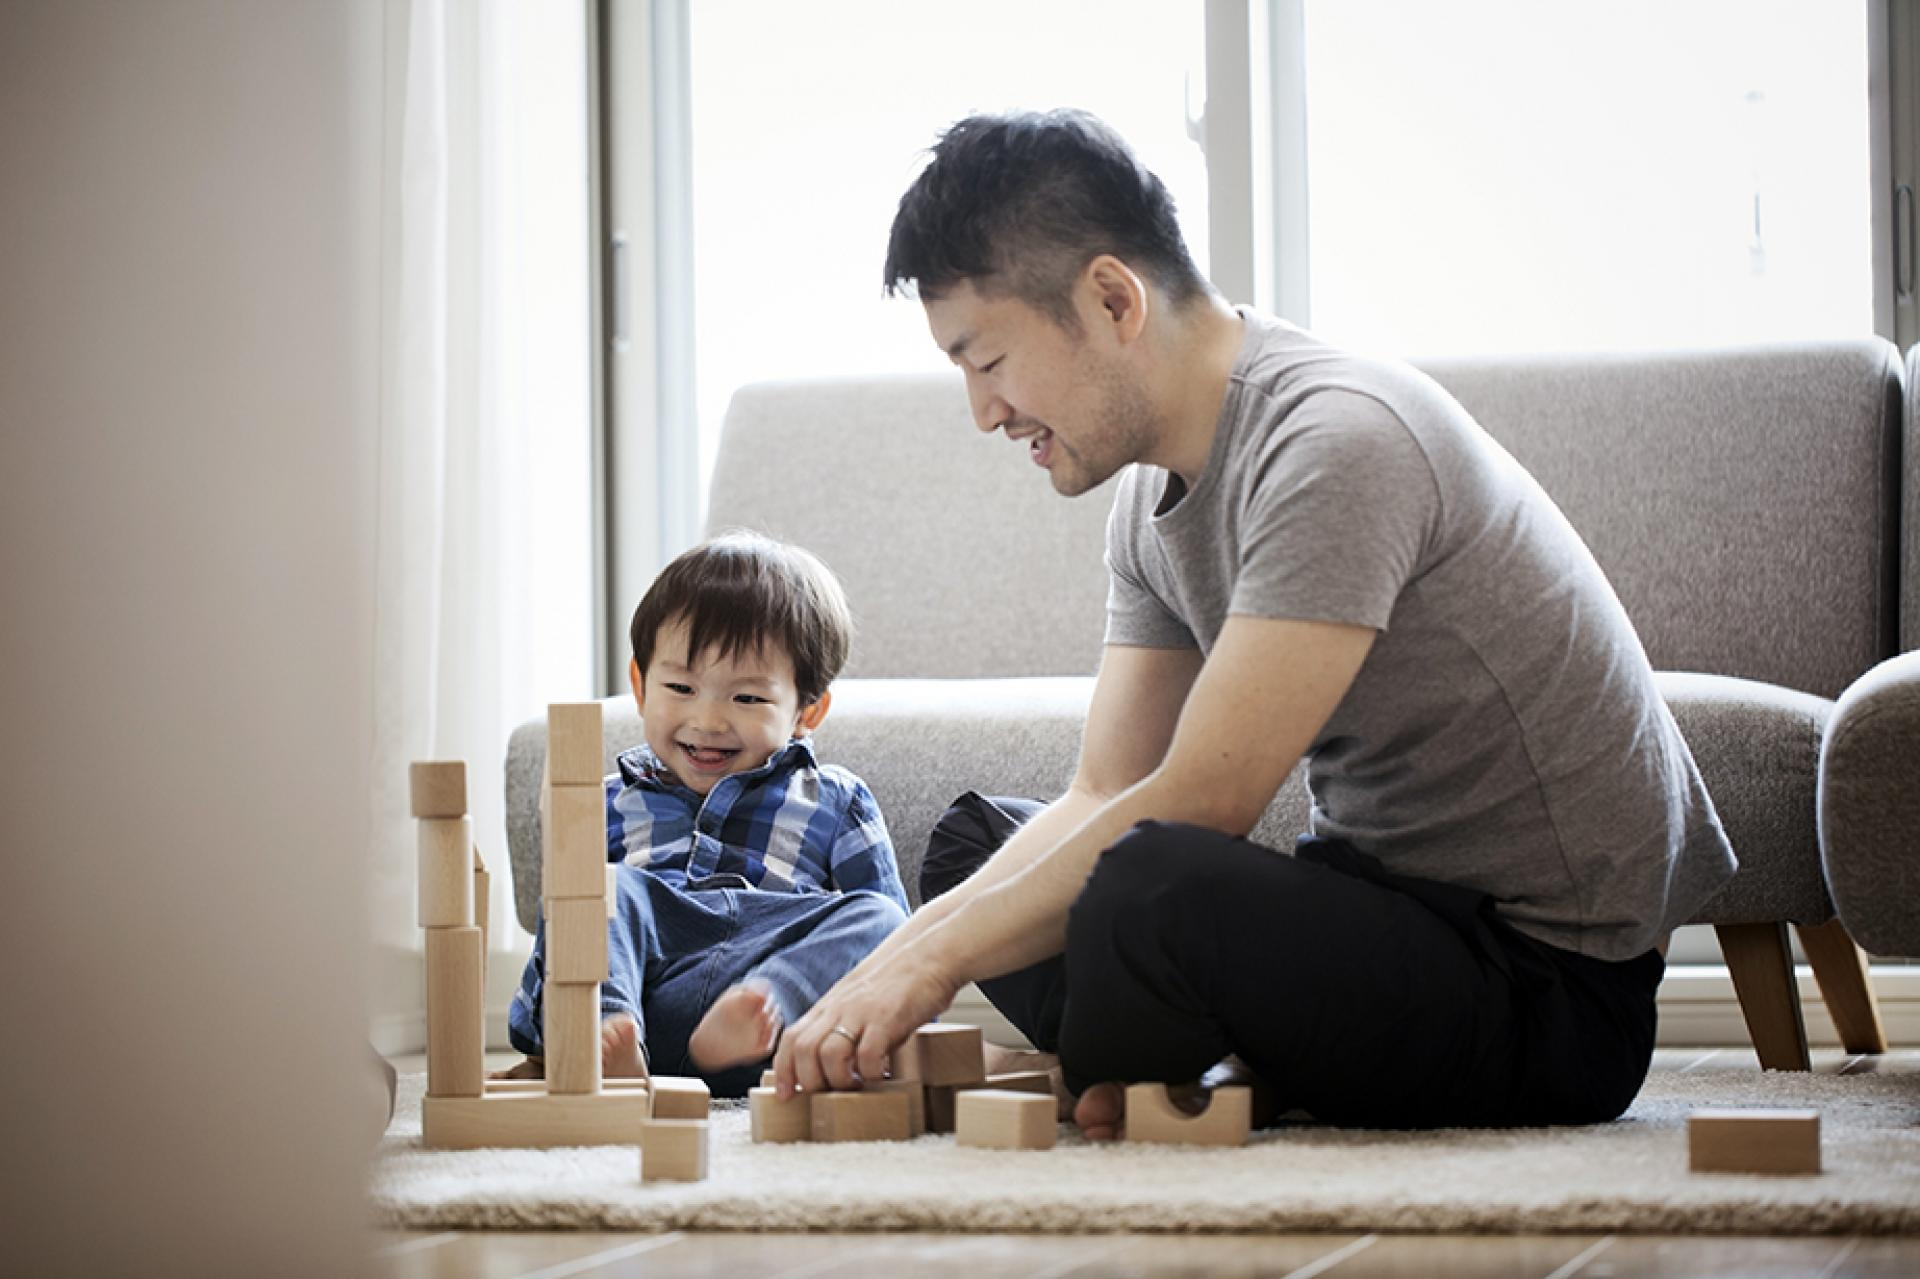 Man sitting with child playing with blocks